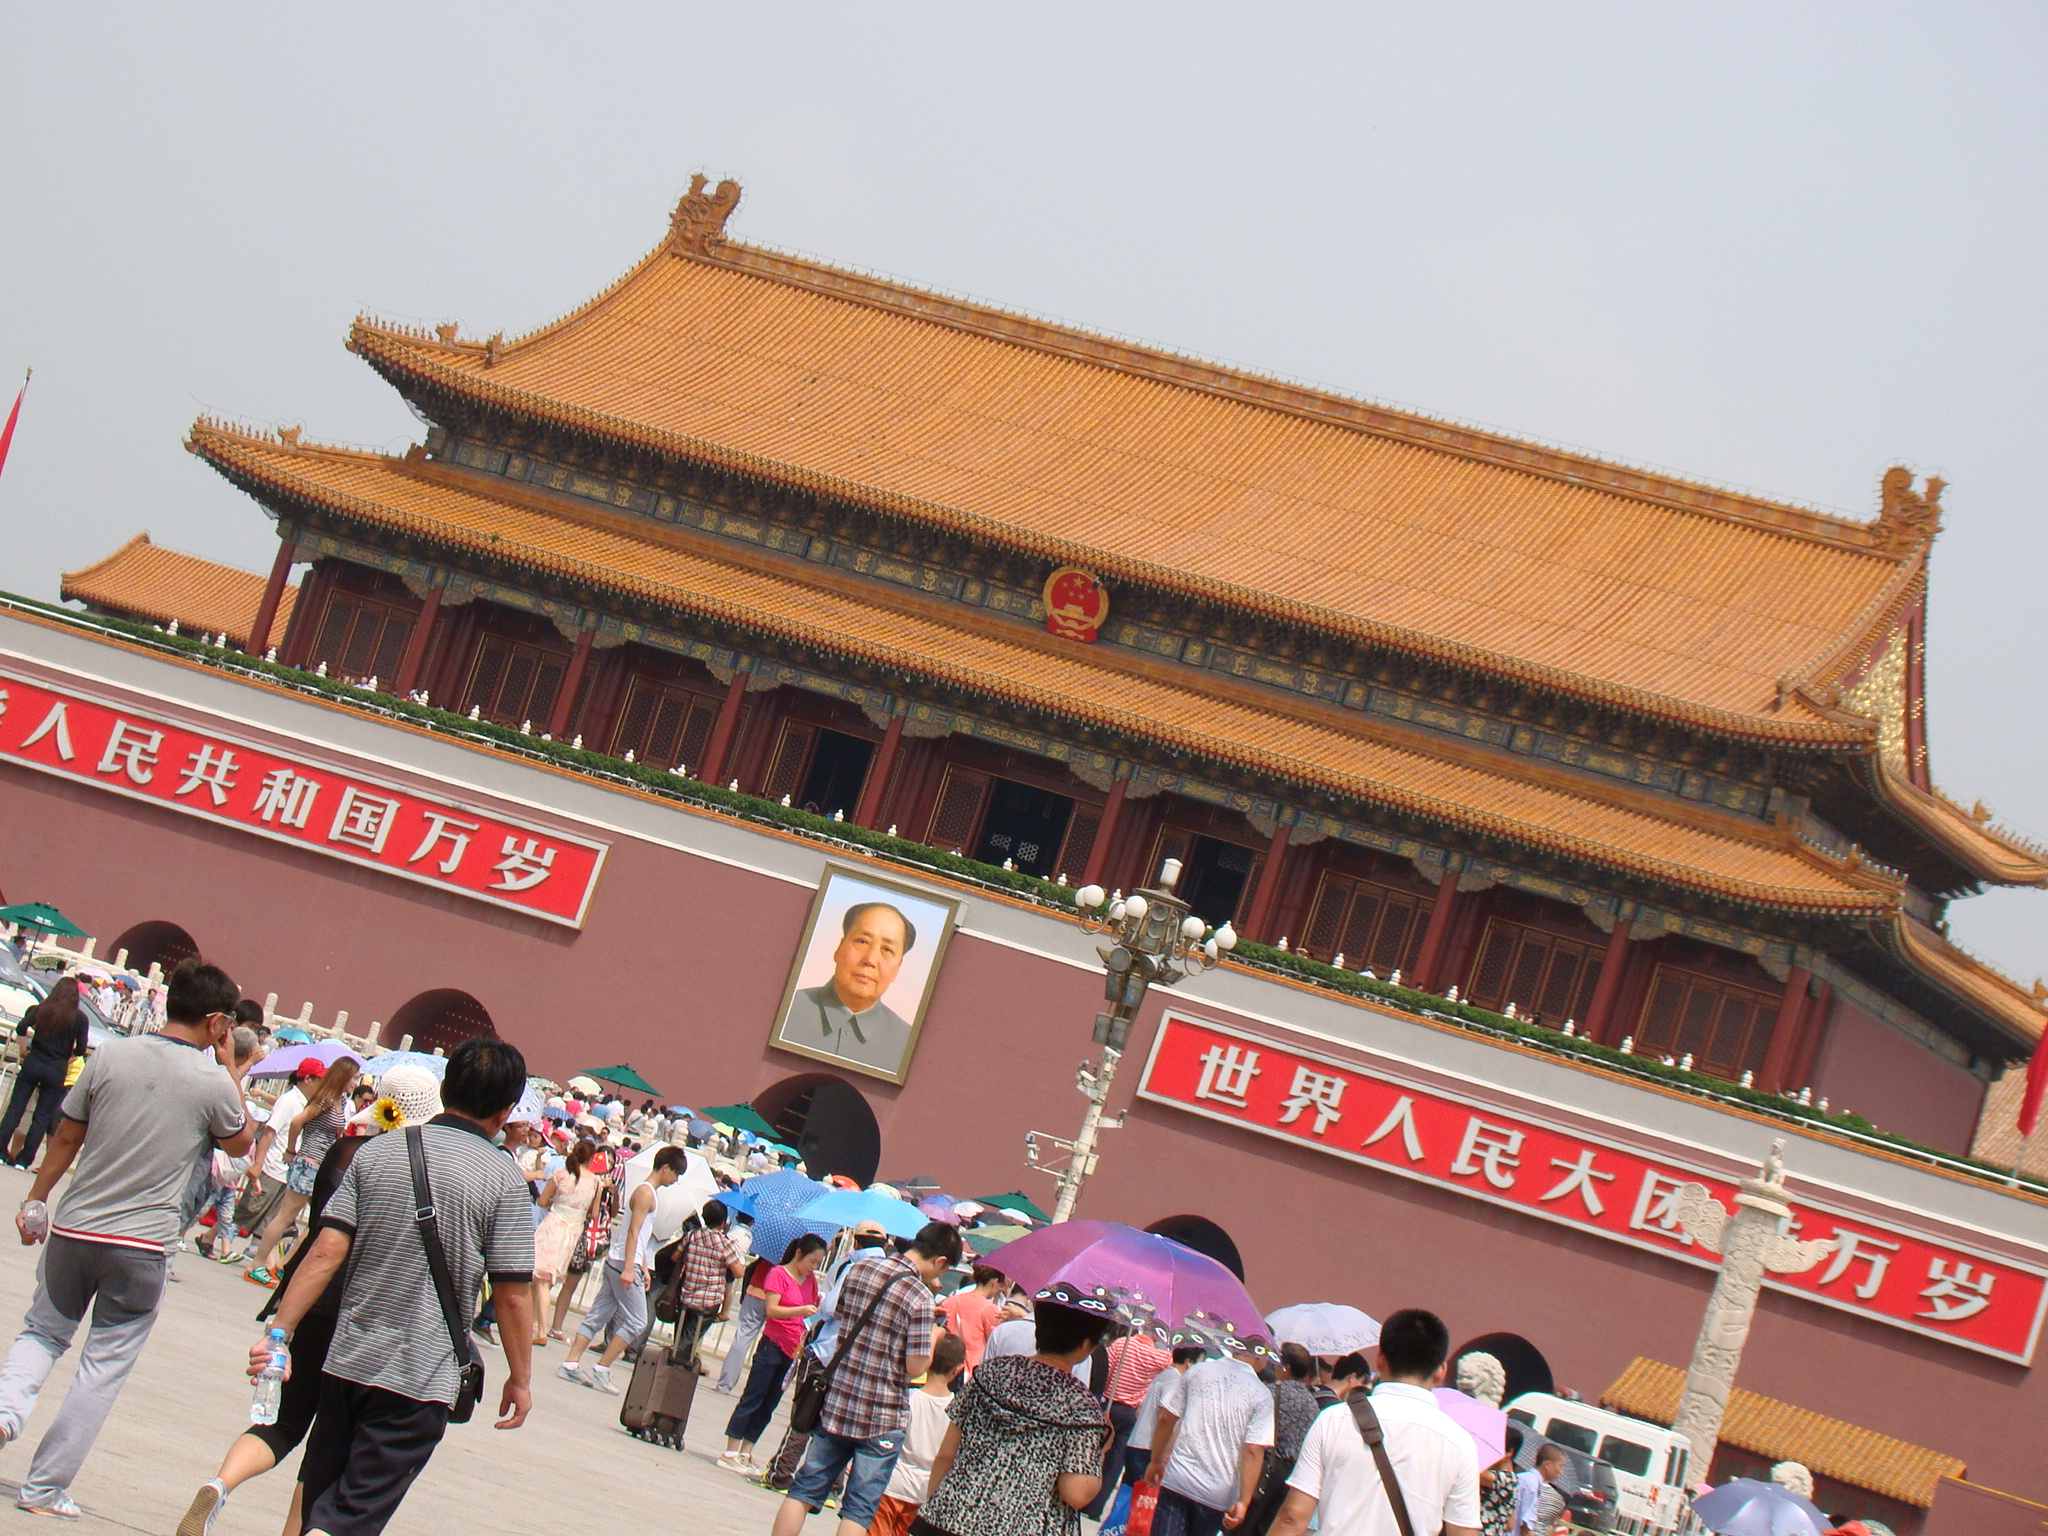 Stepping into Beijing's Forbidden Cityhe East Glorious Gate,